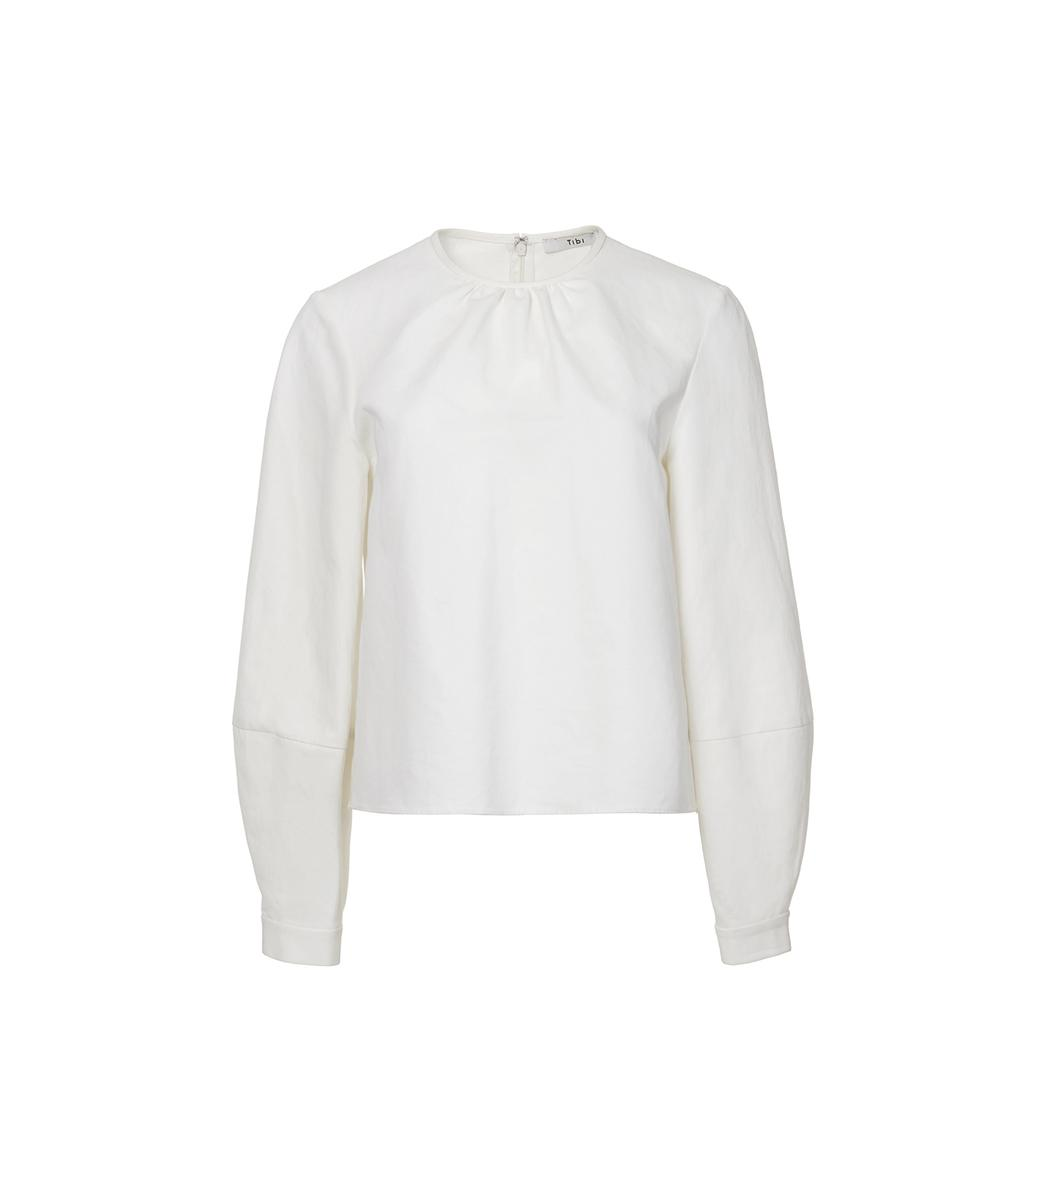 Tibi Ivory Chassis Lantern Sleeve Top